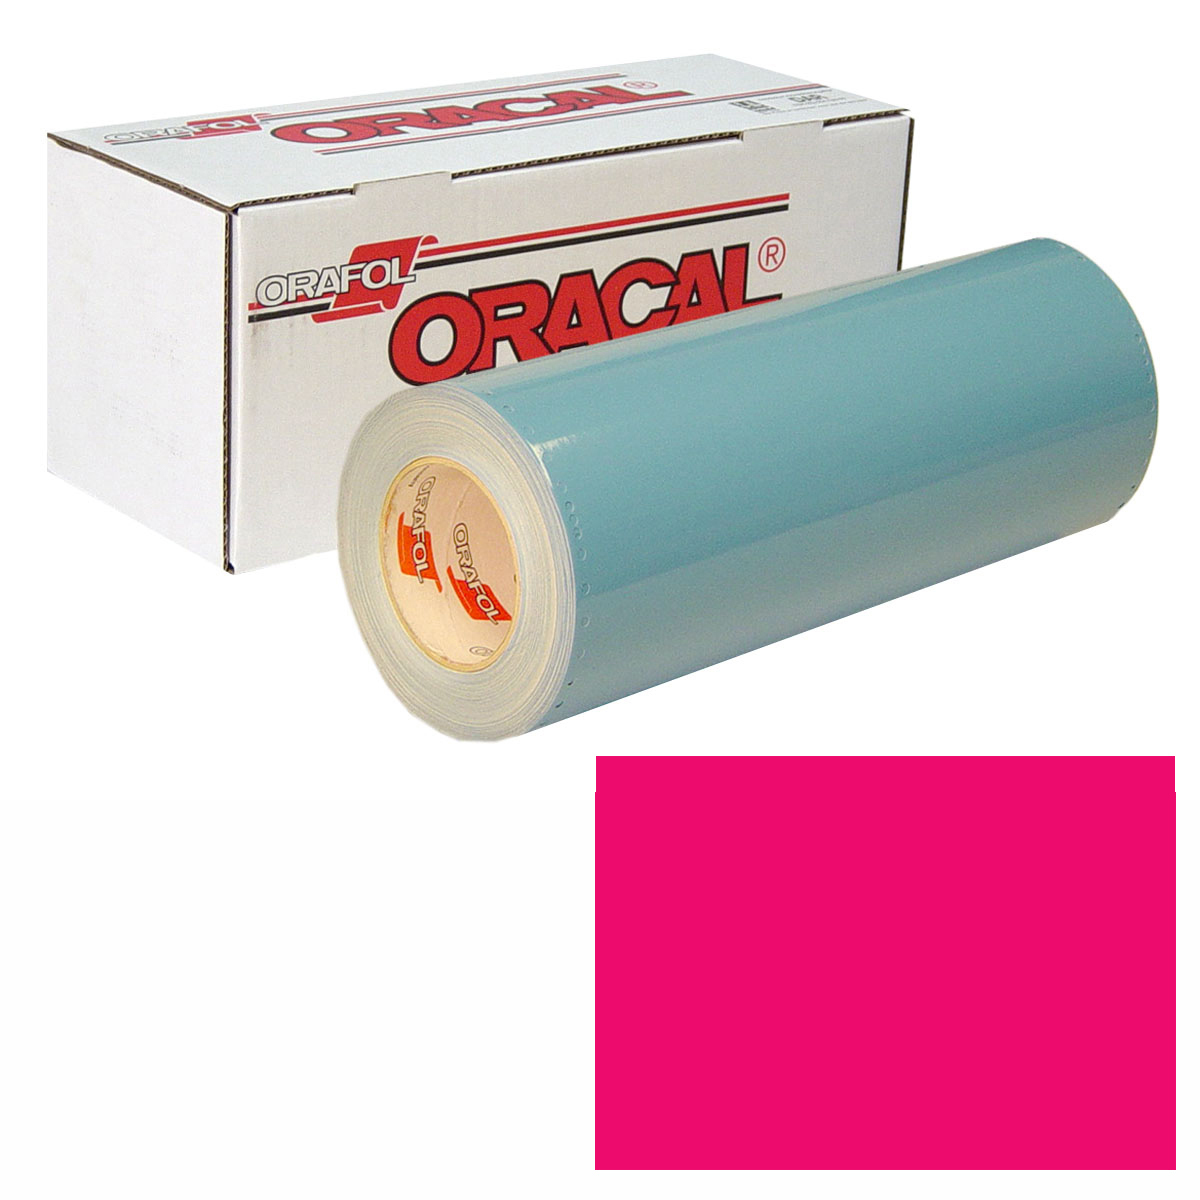 ORACAL 751 Unp 48in X 50yd 041 Pink